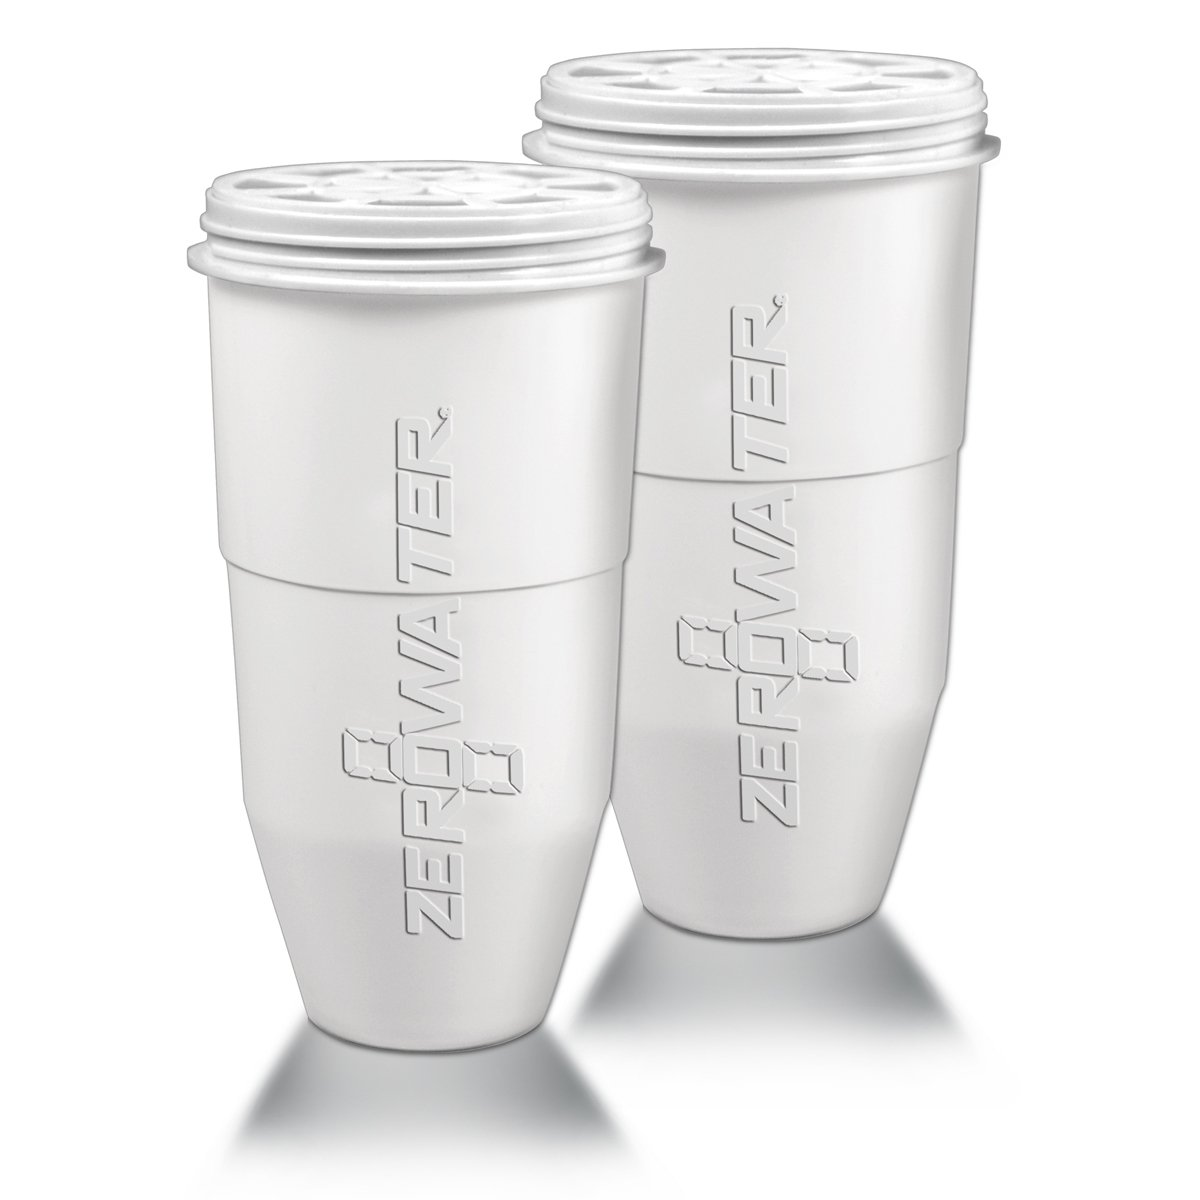 ZeroWater Replacement Filter for Pitchers, 2-Pack - ZR-017